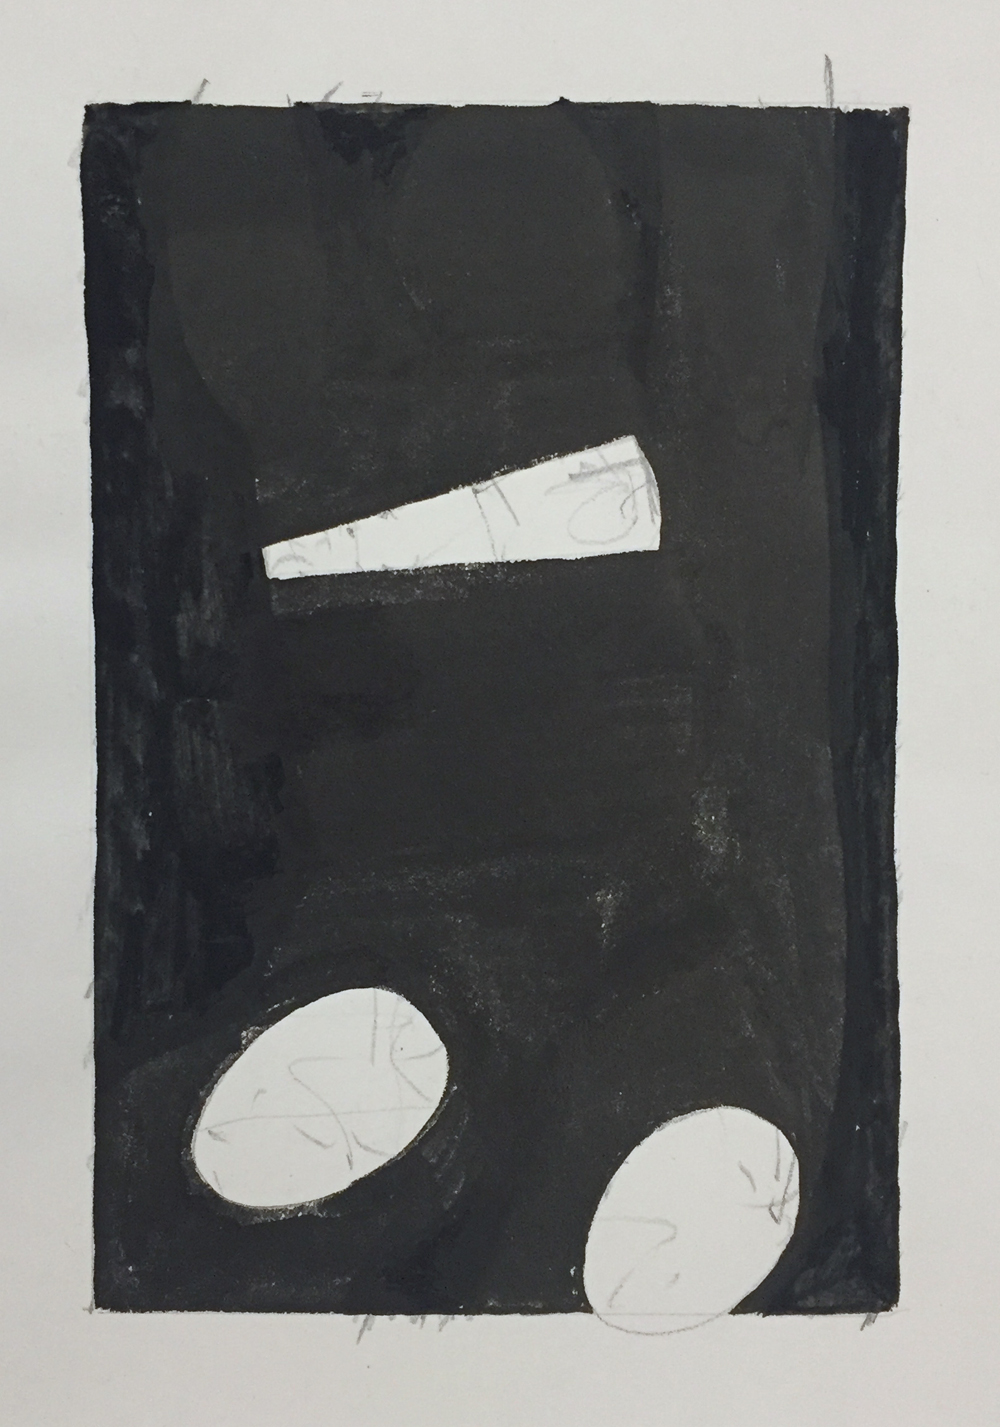 Robert C. Jones, Untitled, GTO3, 25 Jan, 1998, watercolor and graphite on paper, 6 x 4 inches, $1000.